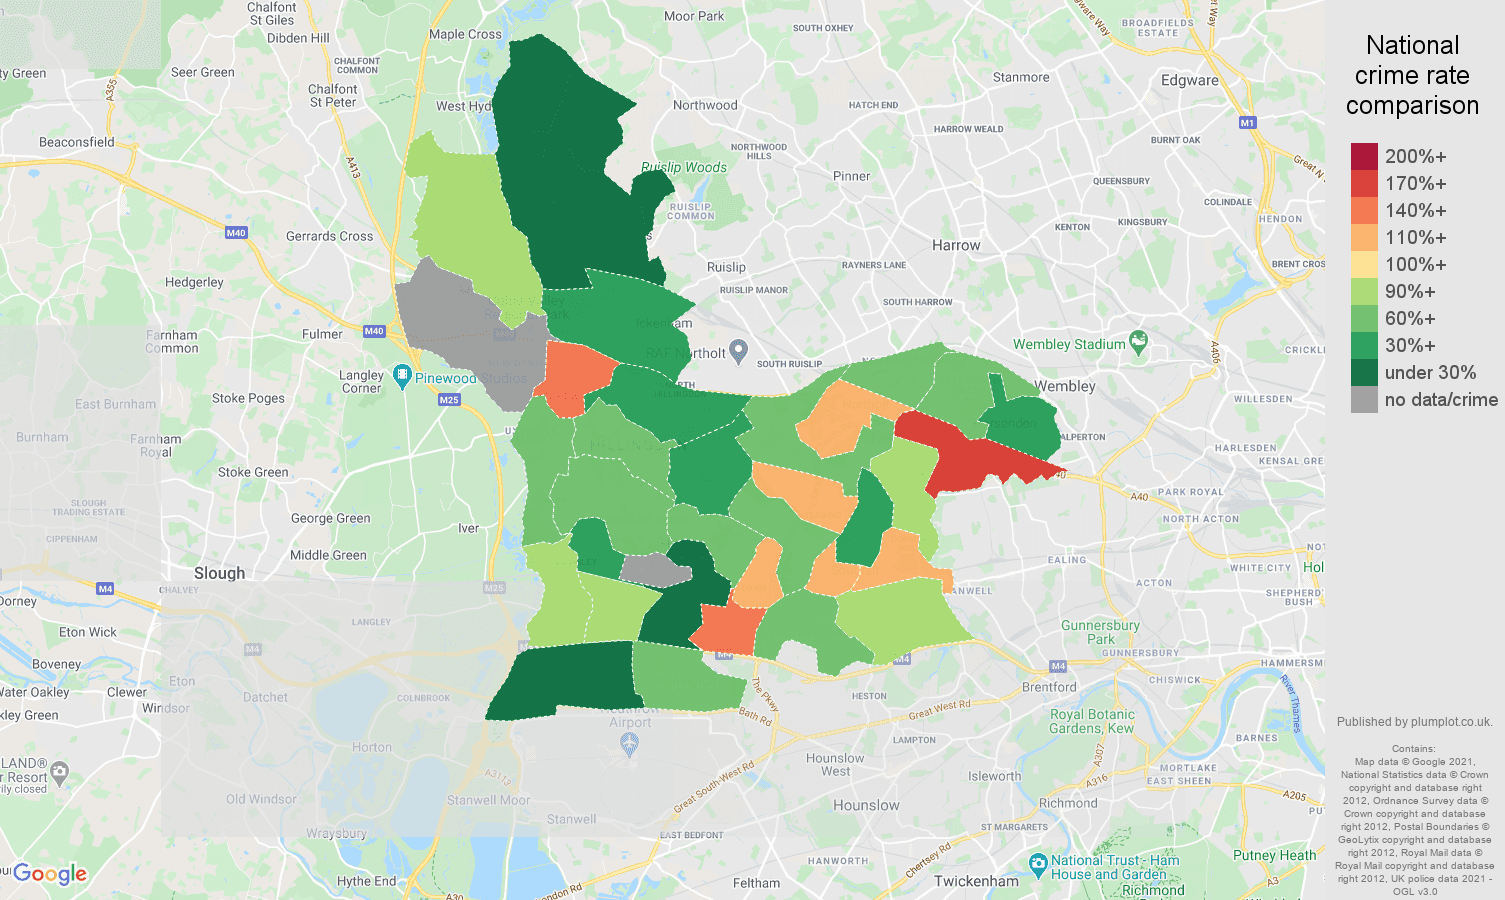 Southall bicycle theft crime rate comparison map